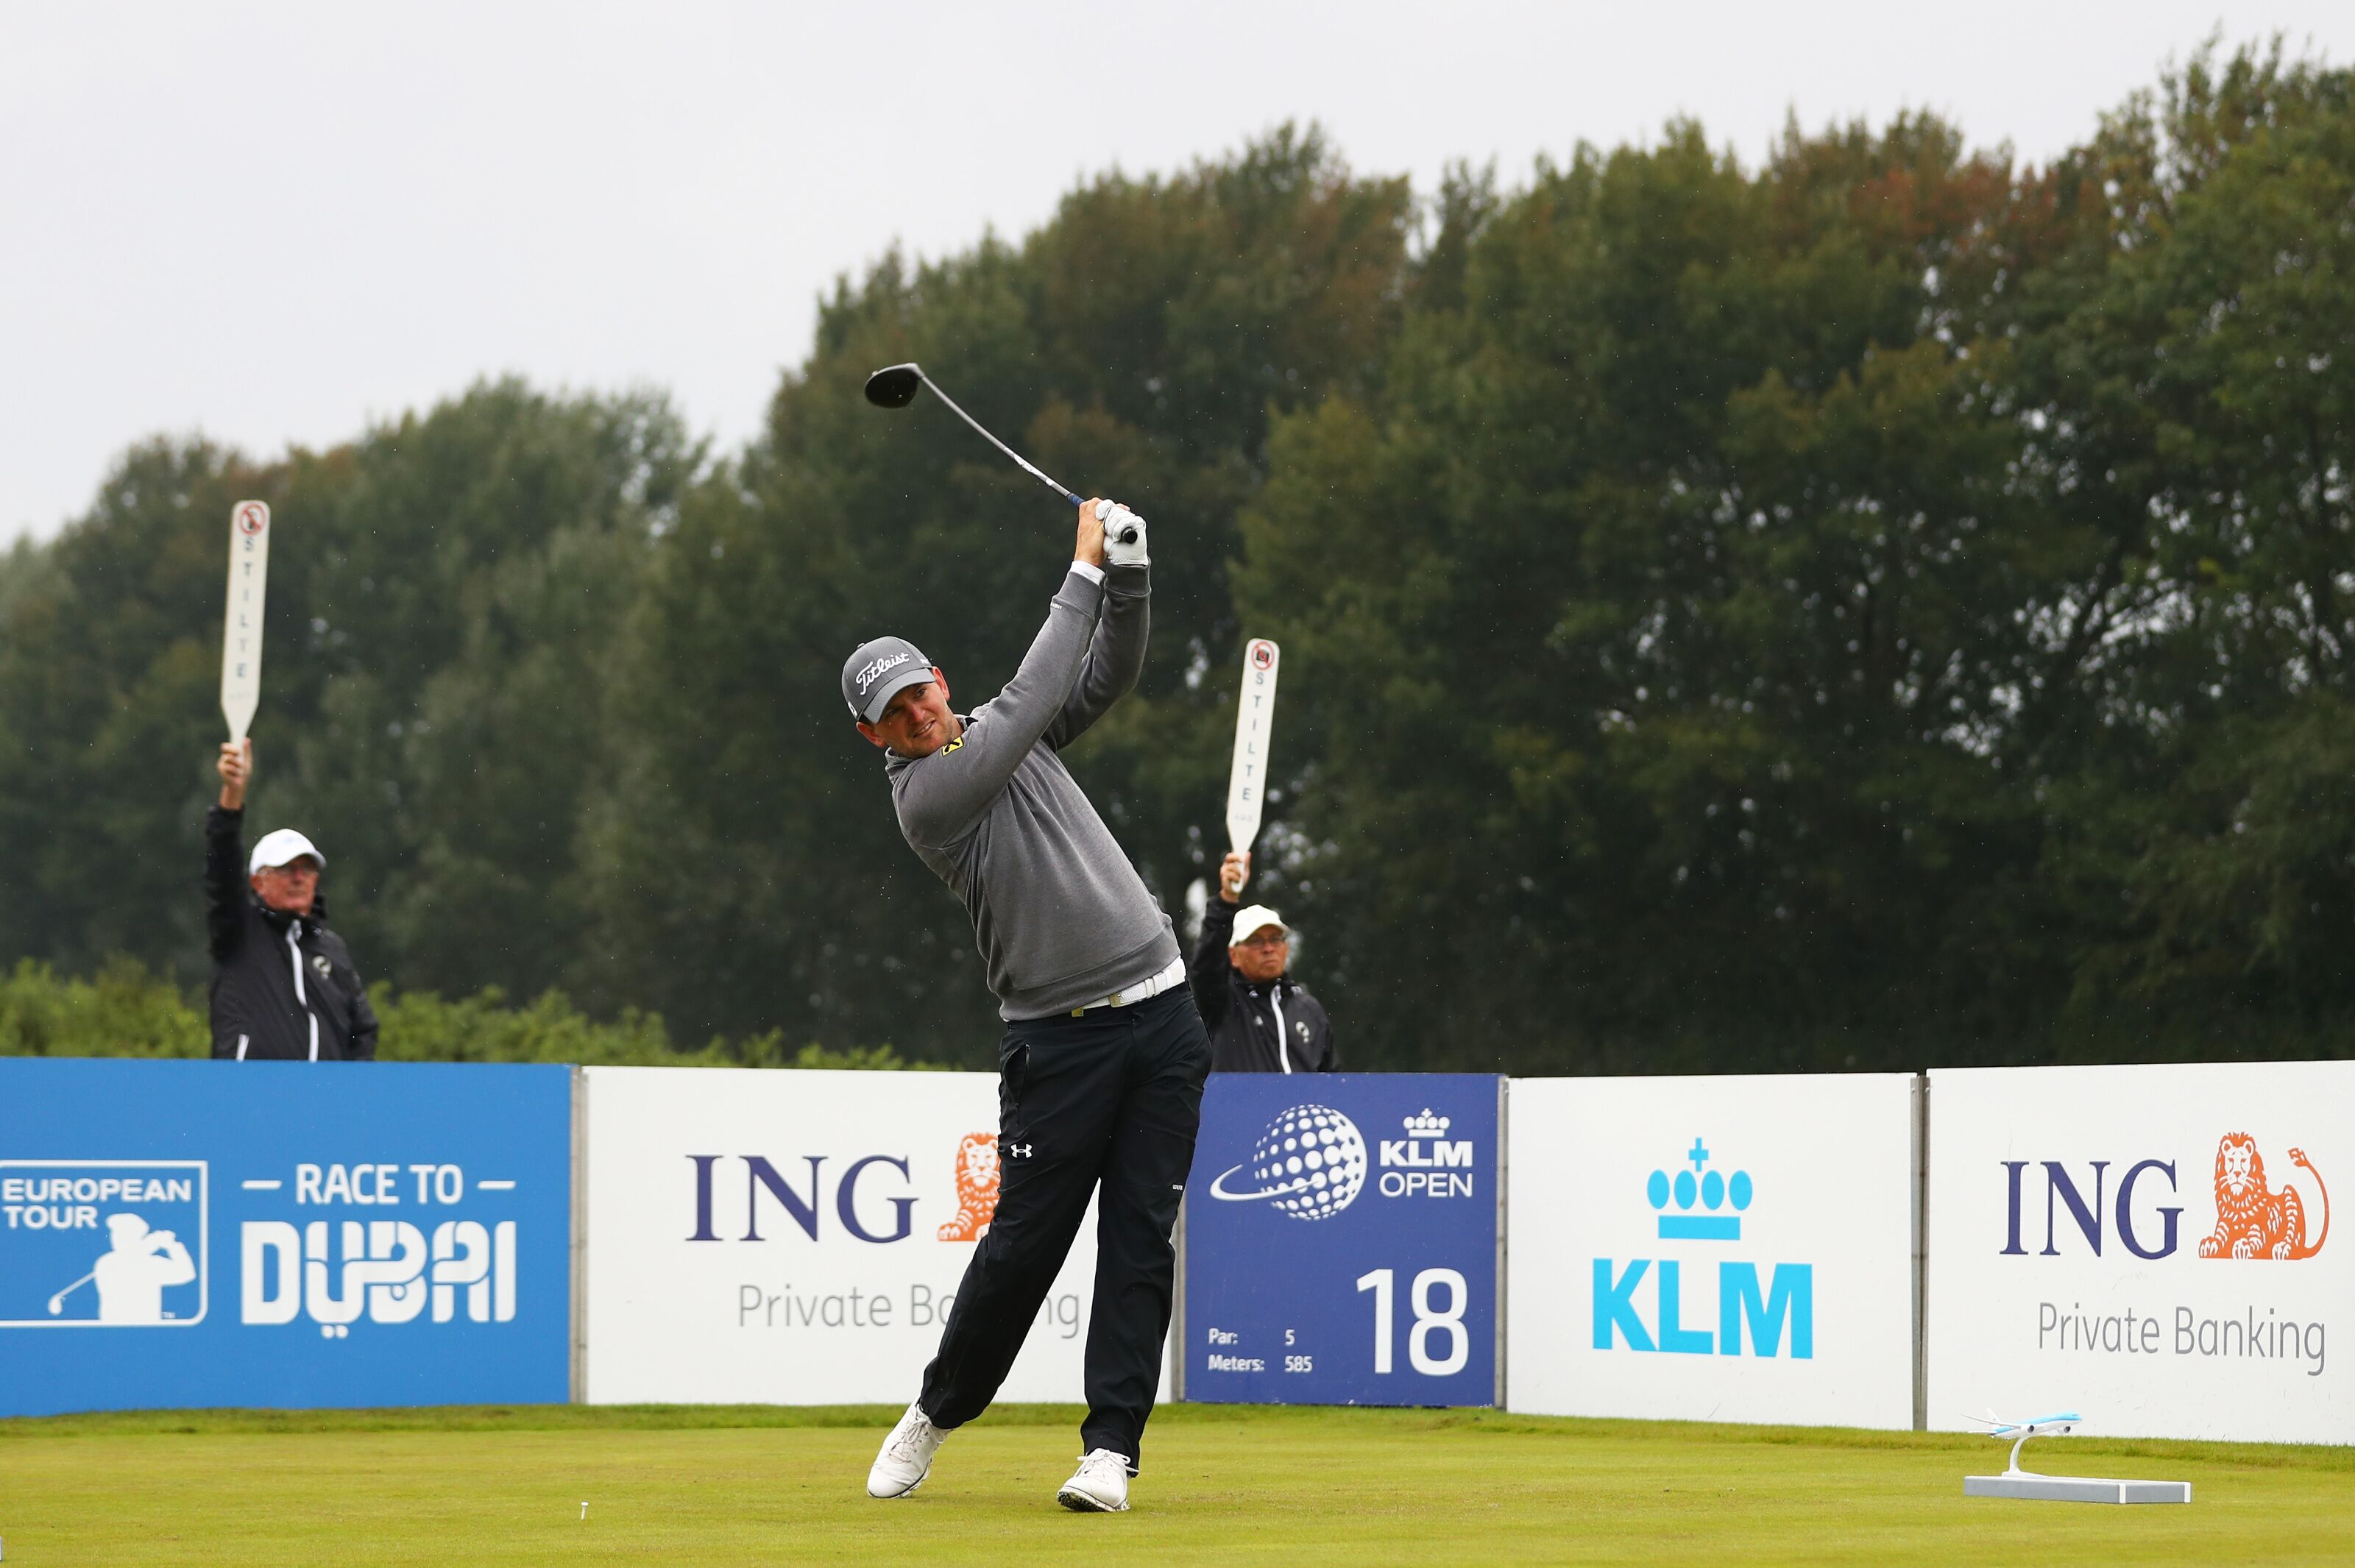 Wiesberger Ties Lead At Halfway Point of Scottish Open With Record 61